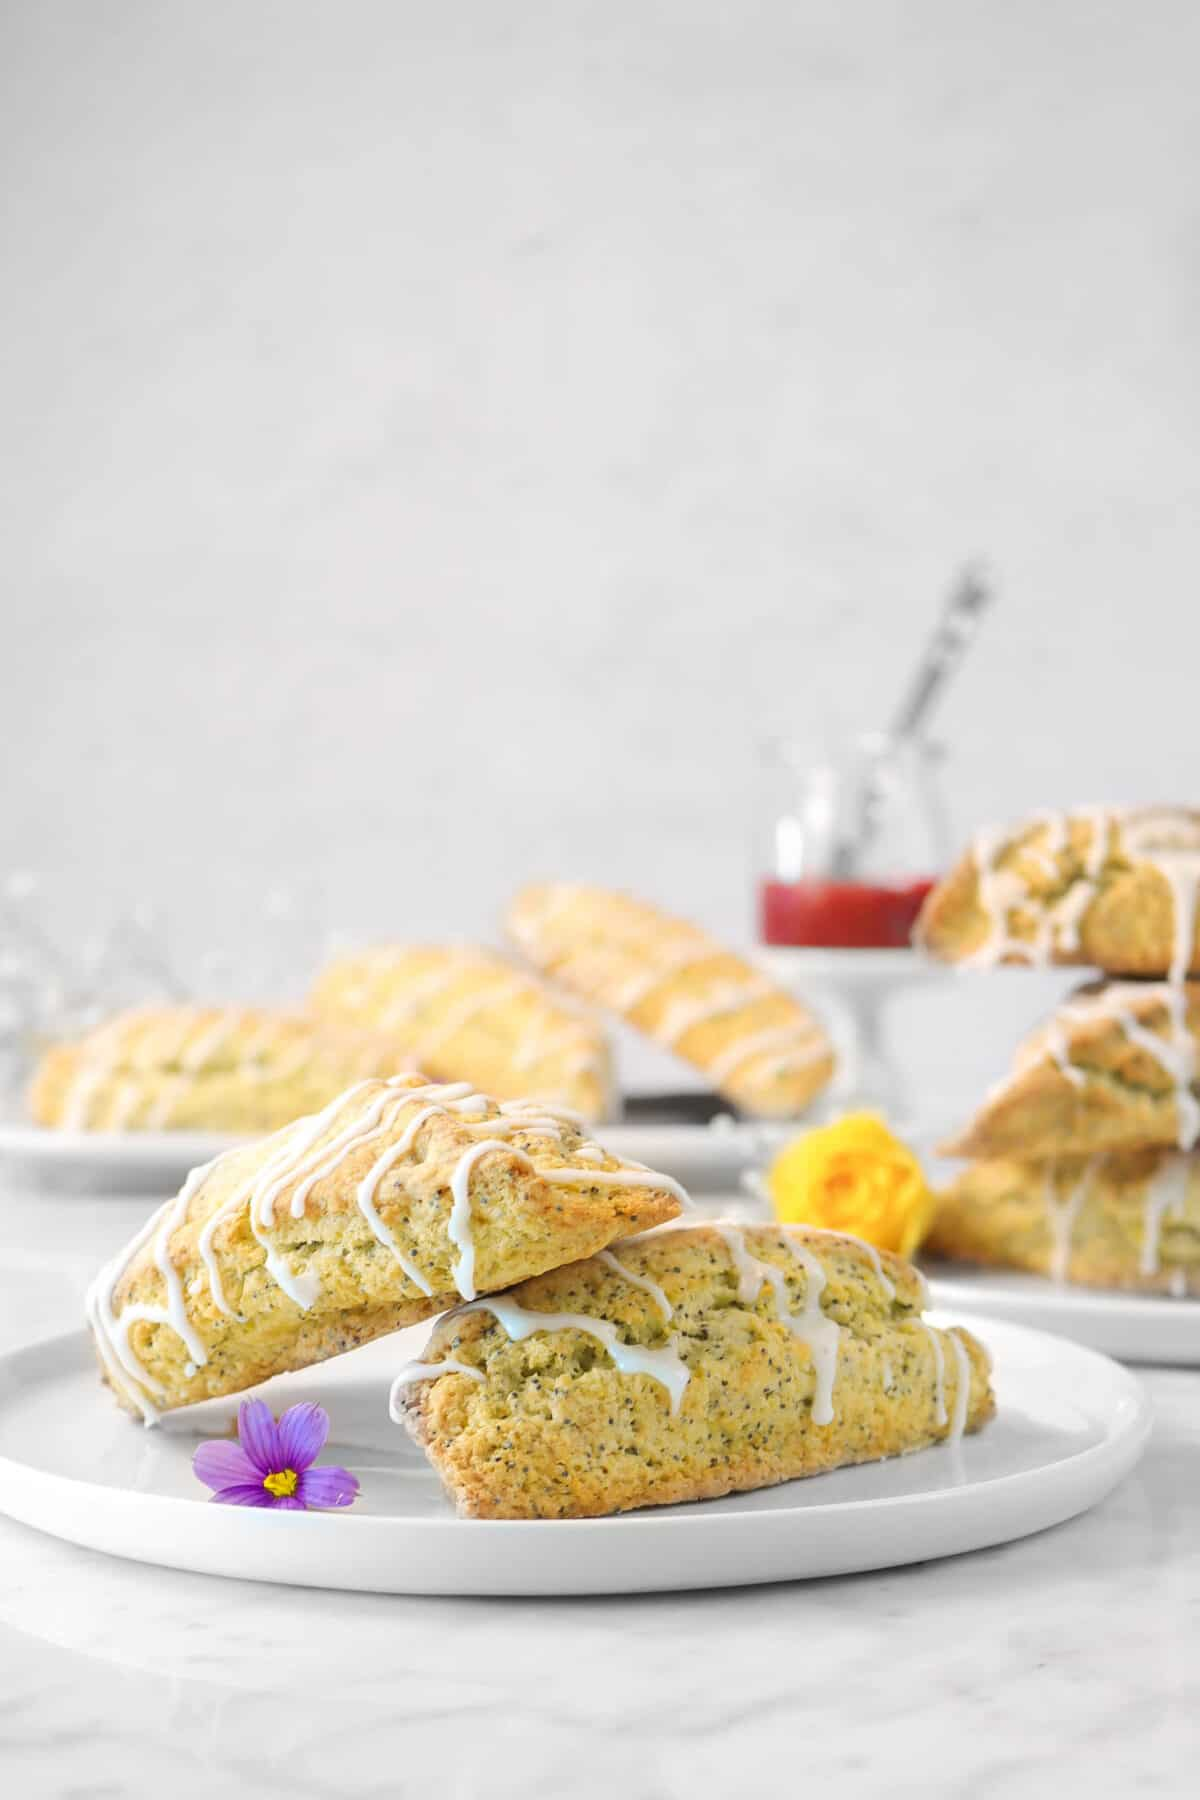 two lemon poppyseed scones on a white plate with fresh flowers and more scones in the background